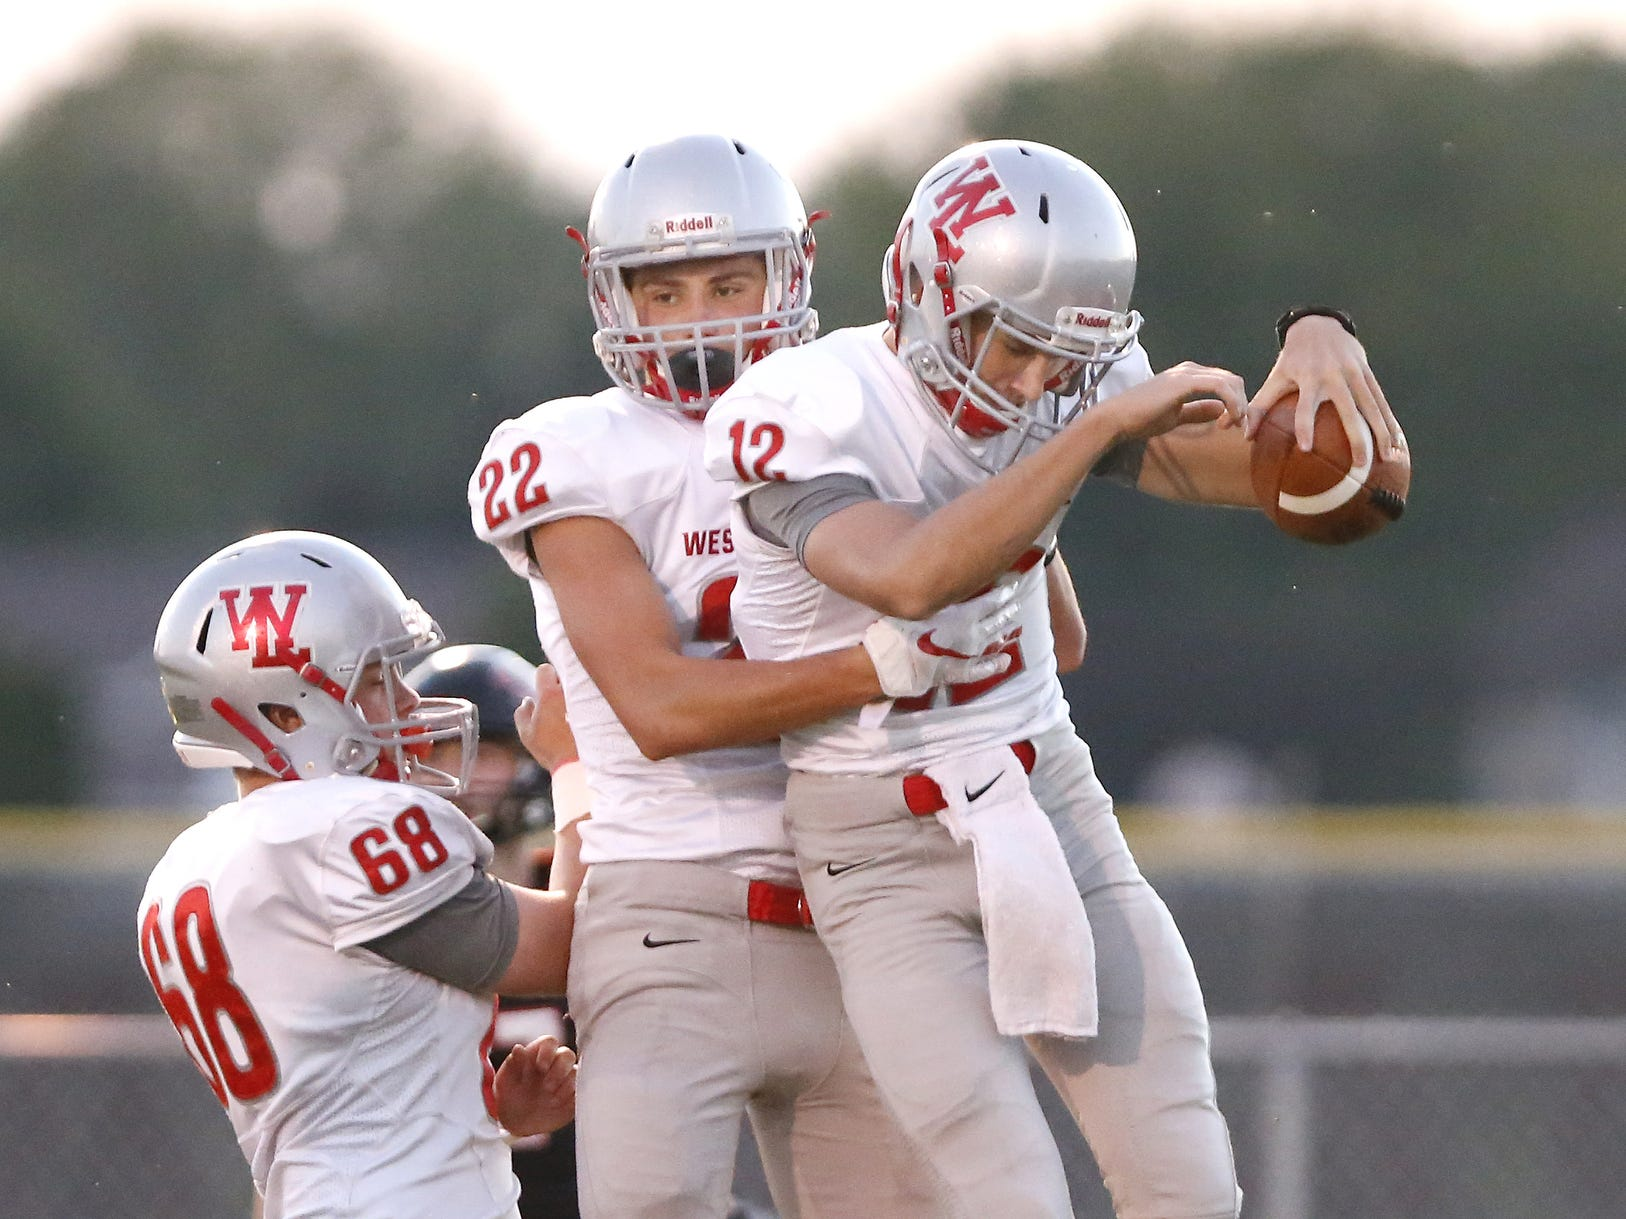 West Lafayette quarterback Kyle Adams, right,  celebrates with teammates R. J. Erb and Joey Gavin after rushing for a touchdown at 10:58in the first quarter against Rensselaer Friday, September 14, 2018, in Rensselaer. West Lafayette defeated Rensselaer 69-14.